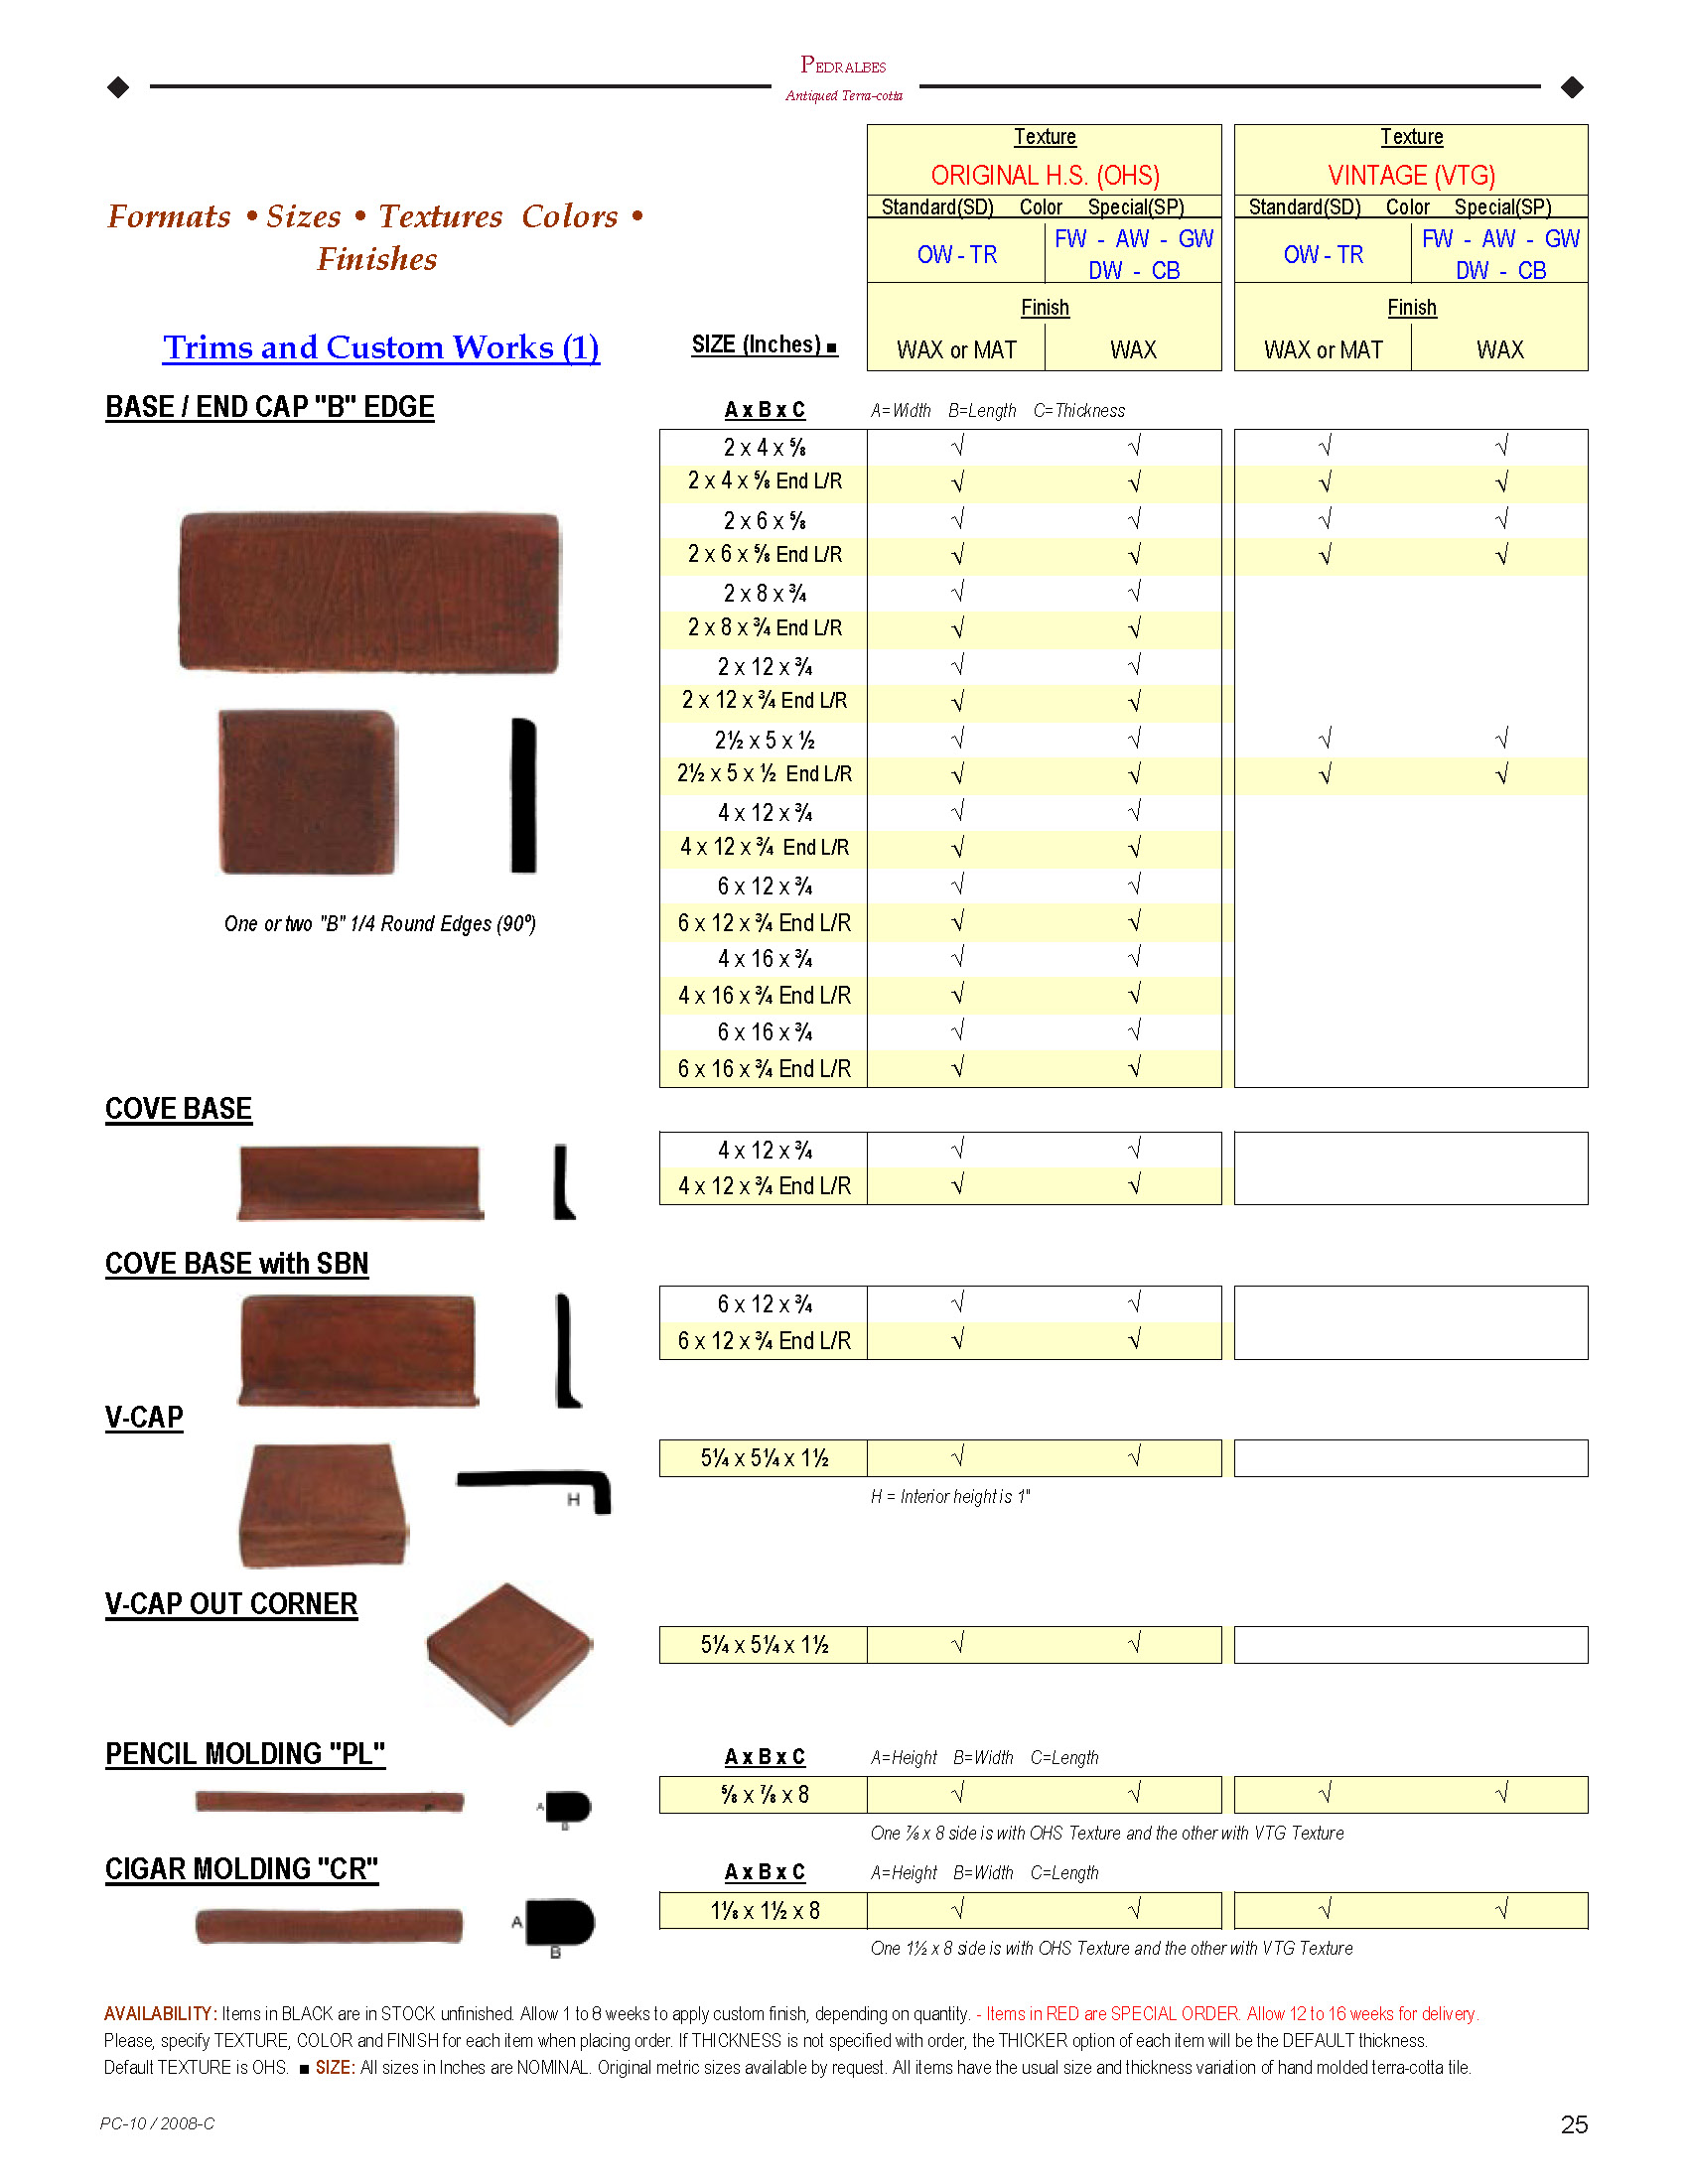 03-Formats+Sizes_Page_09.jpg